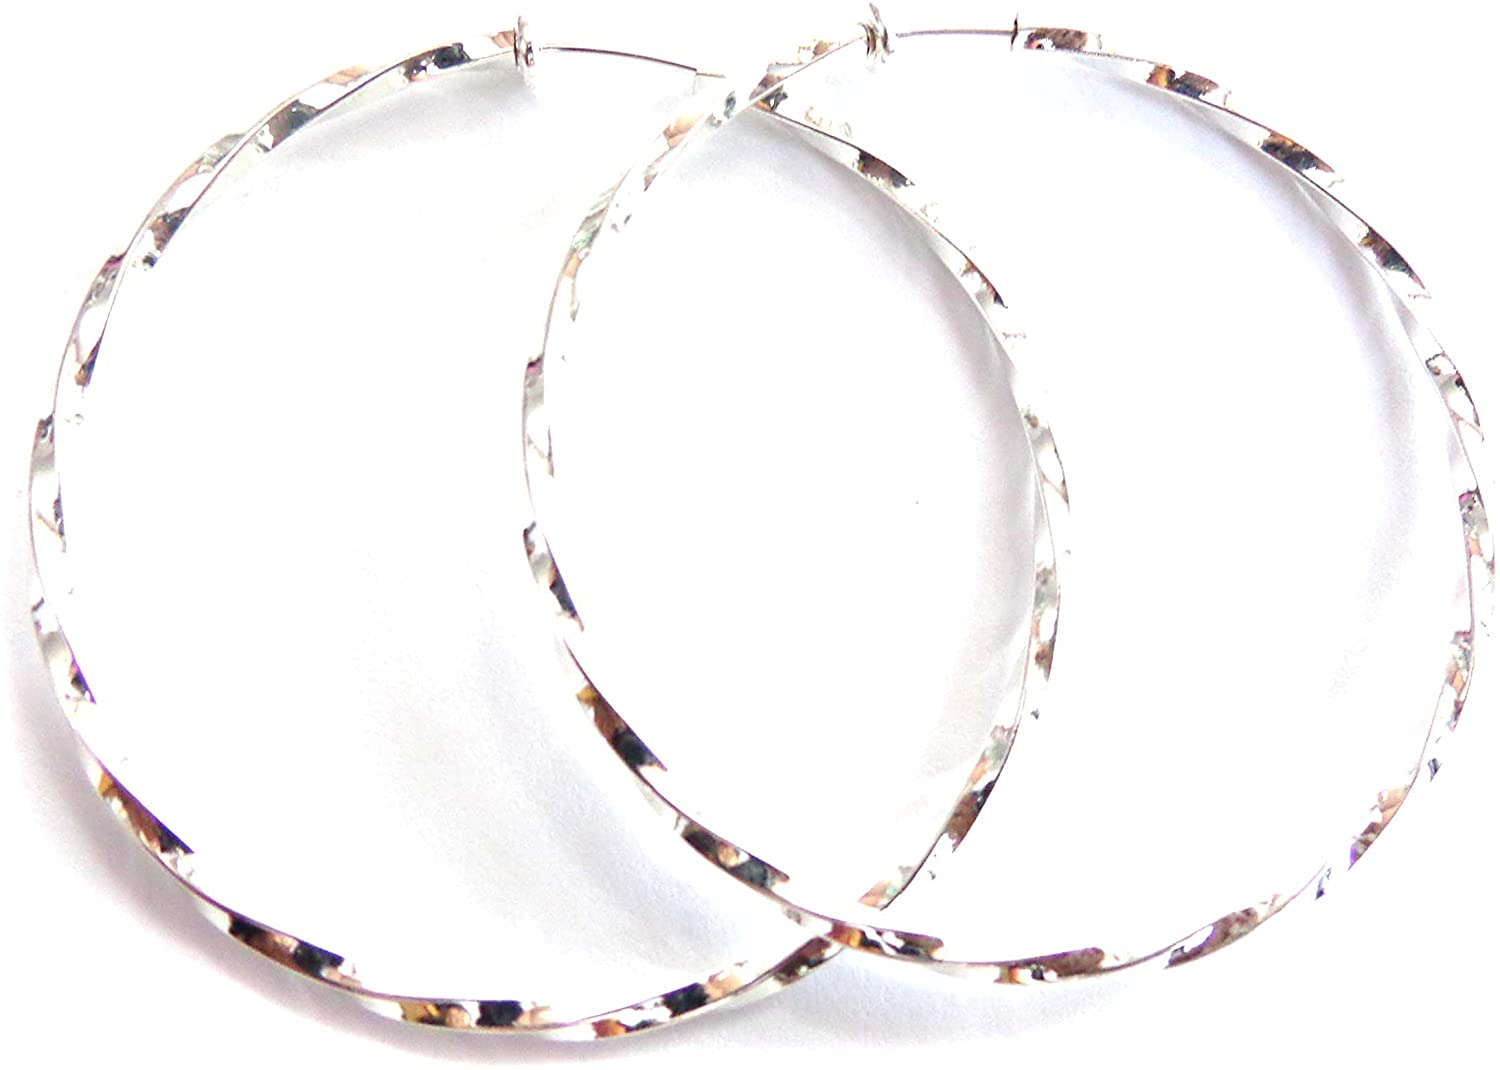 Clip-on Earrings Plated Silver tone Twisted Hoops 2.25 inch Hoop